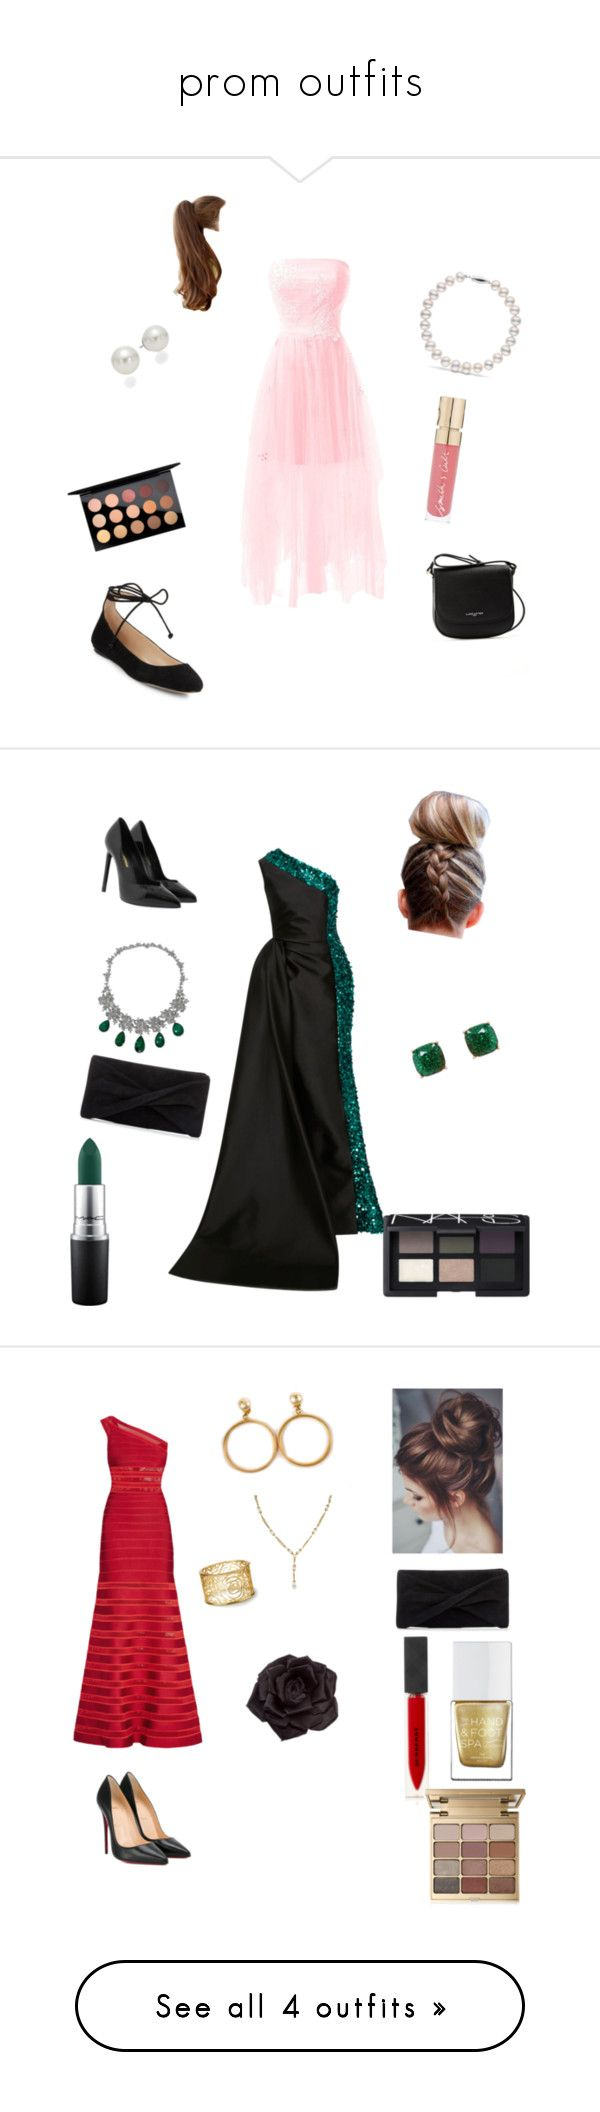 """""""prom outfits"""" by mountaindewqueen15 ❤ liked on Polyvore featuring Karl Lagerfeld, Lancaster, Smith & Cult, MAC Cosmetics, AK Anne Klein, Elizabeth Kennedy, NARS Cosmetics, Humble Chic, Reiss and Yves Saint Laurent"""